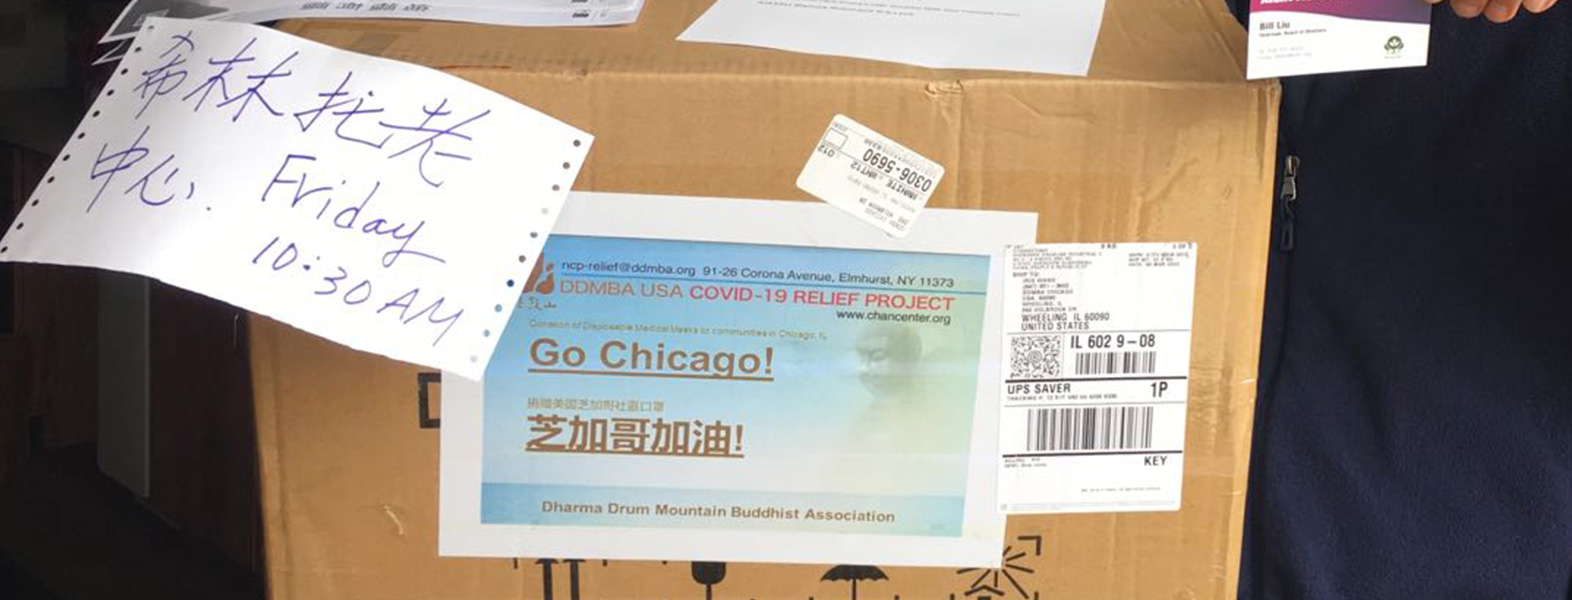 DDMBA USA COVID-19 Relief Project Delivery Report - Chicago